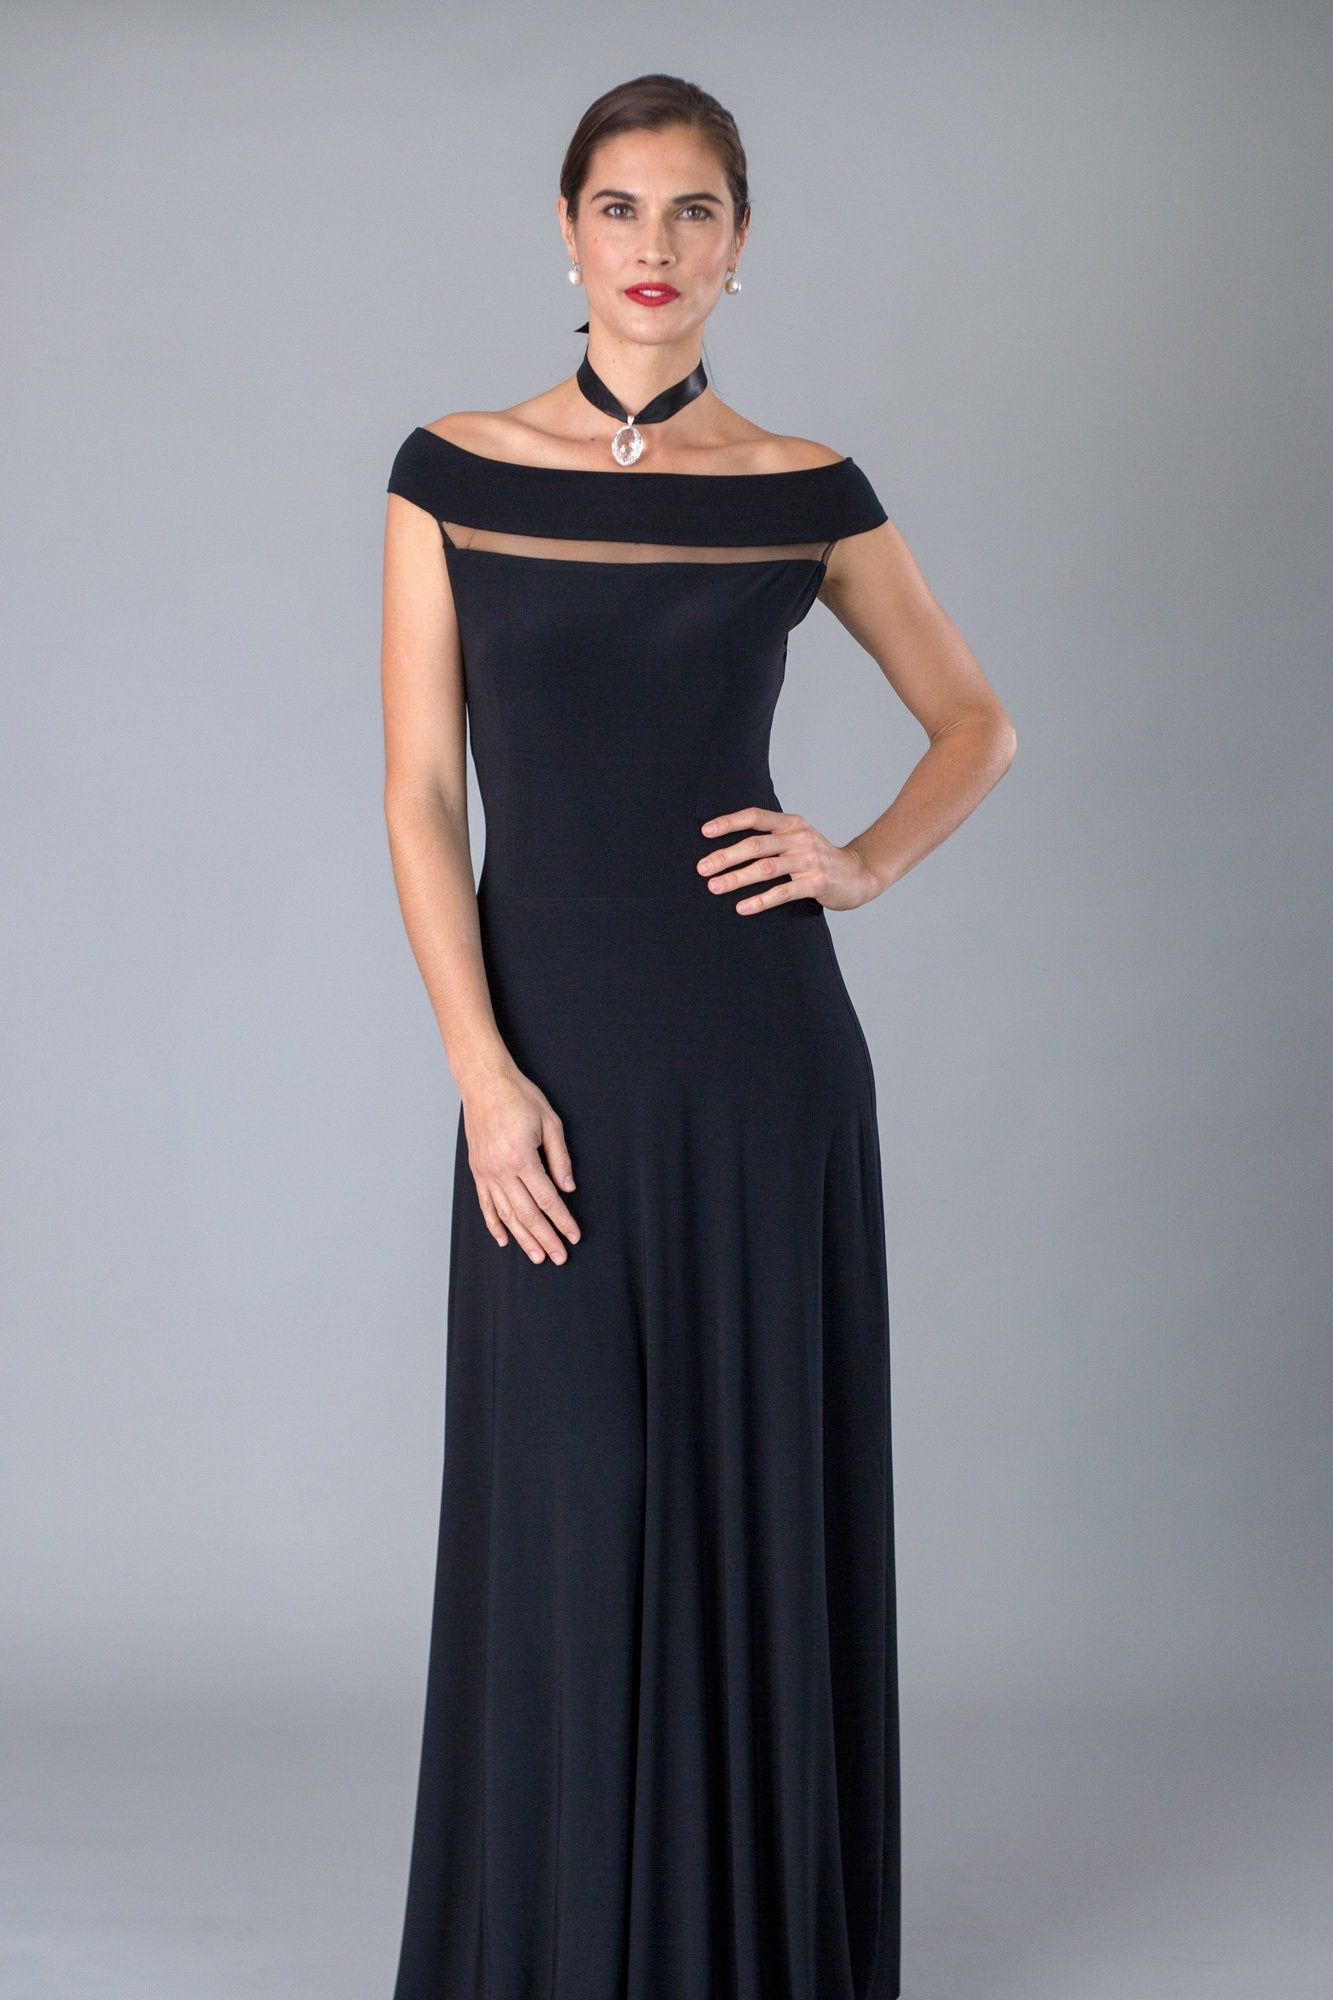 Black Floor Length Off the Shoulder Gown for the Mother of the Bride / Groom